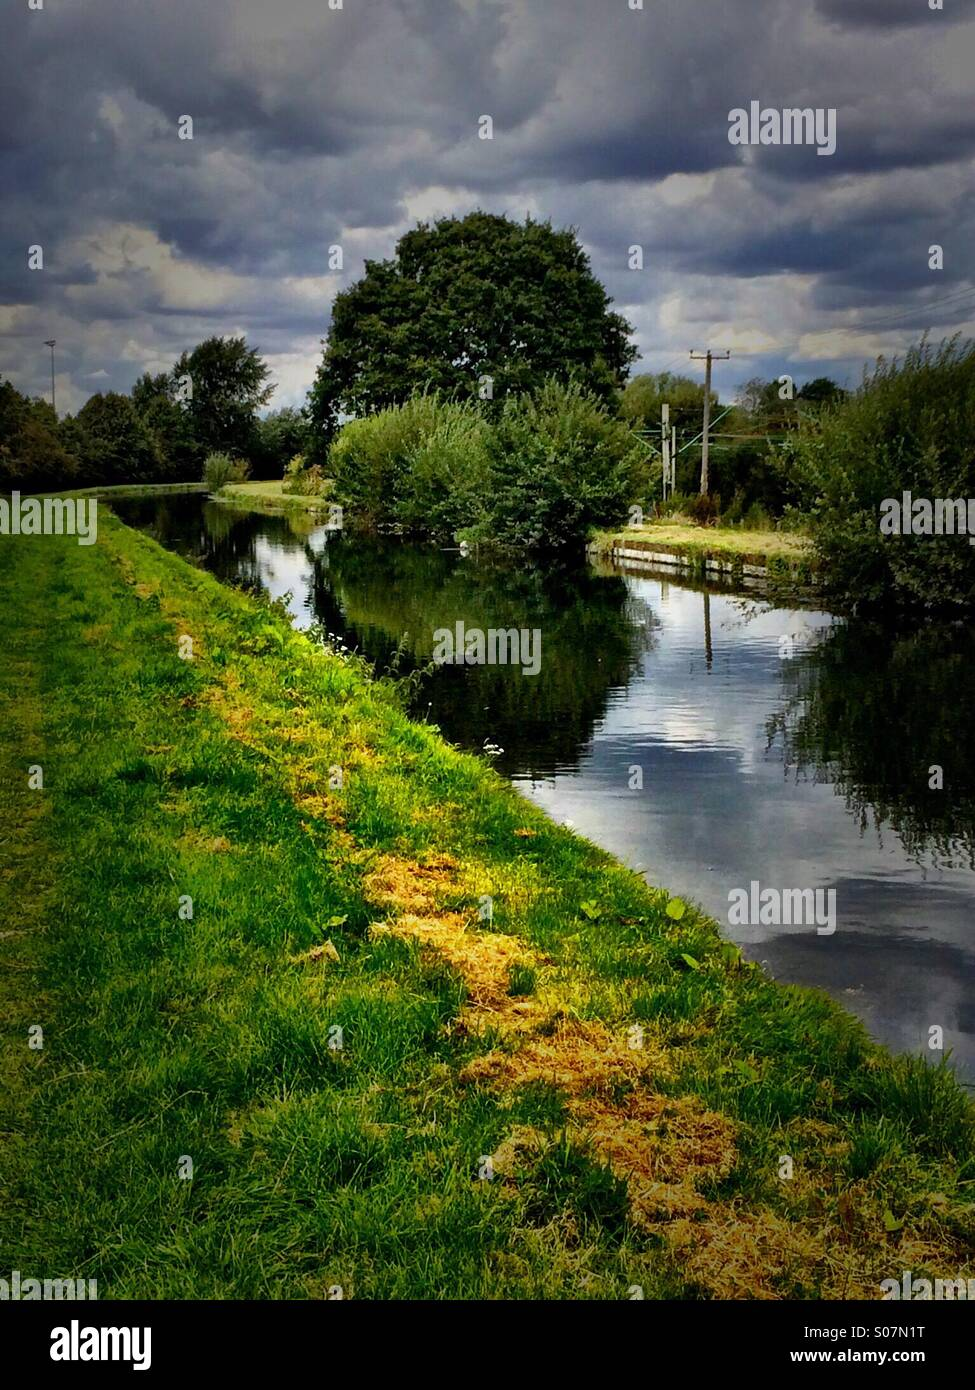 Walking on the towpath by the river - Stock Image